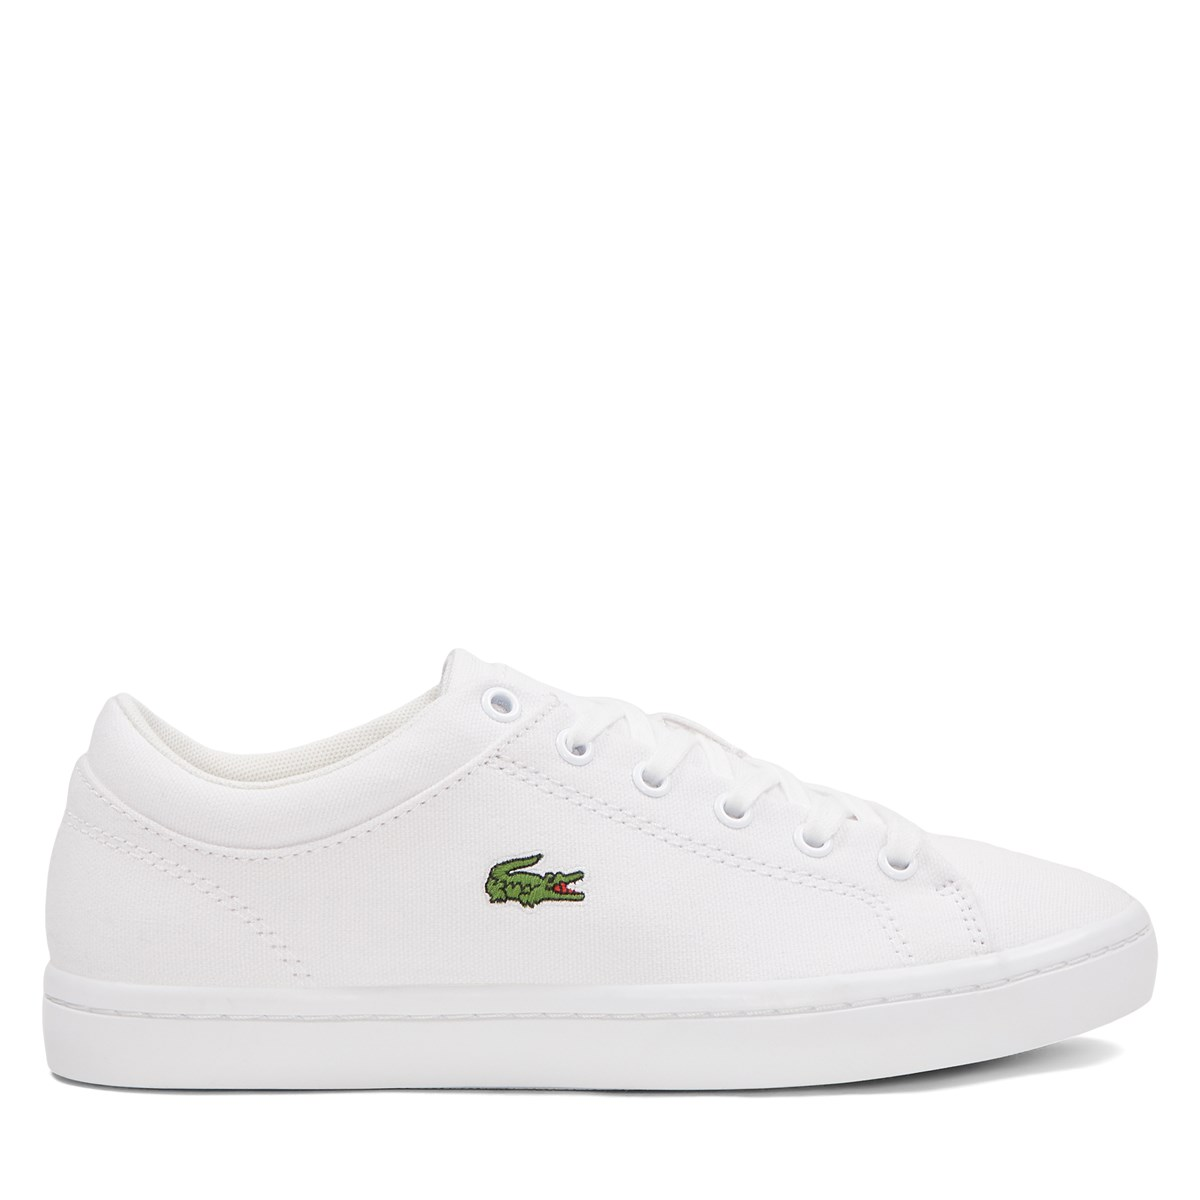 Women's Straightset Sneakers in White